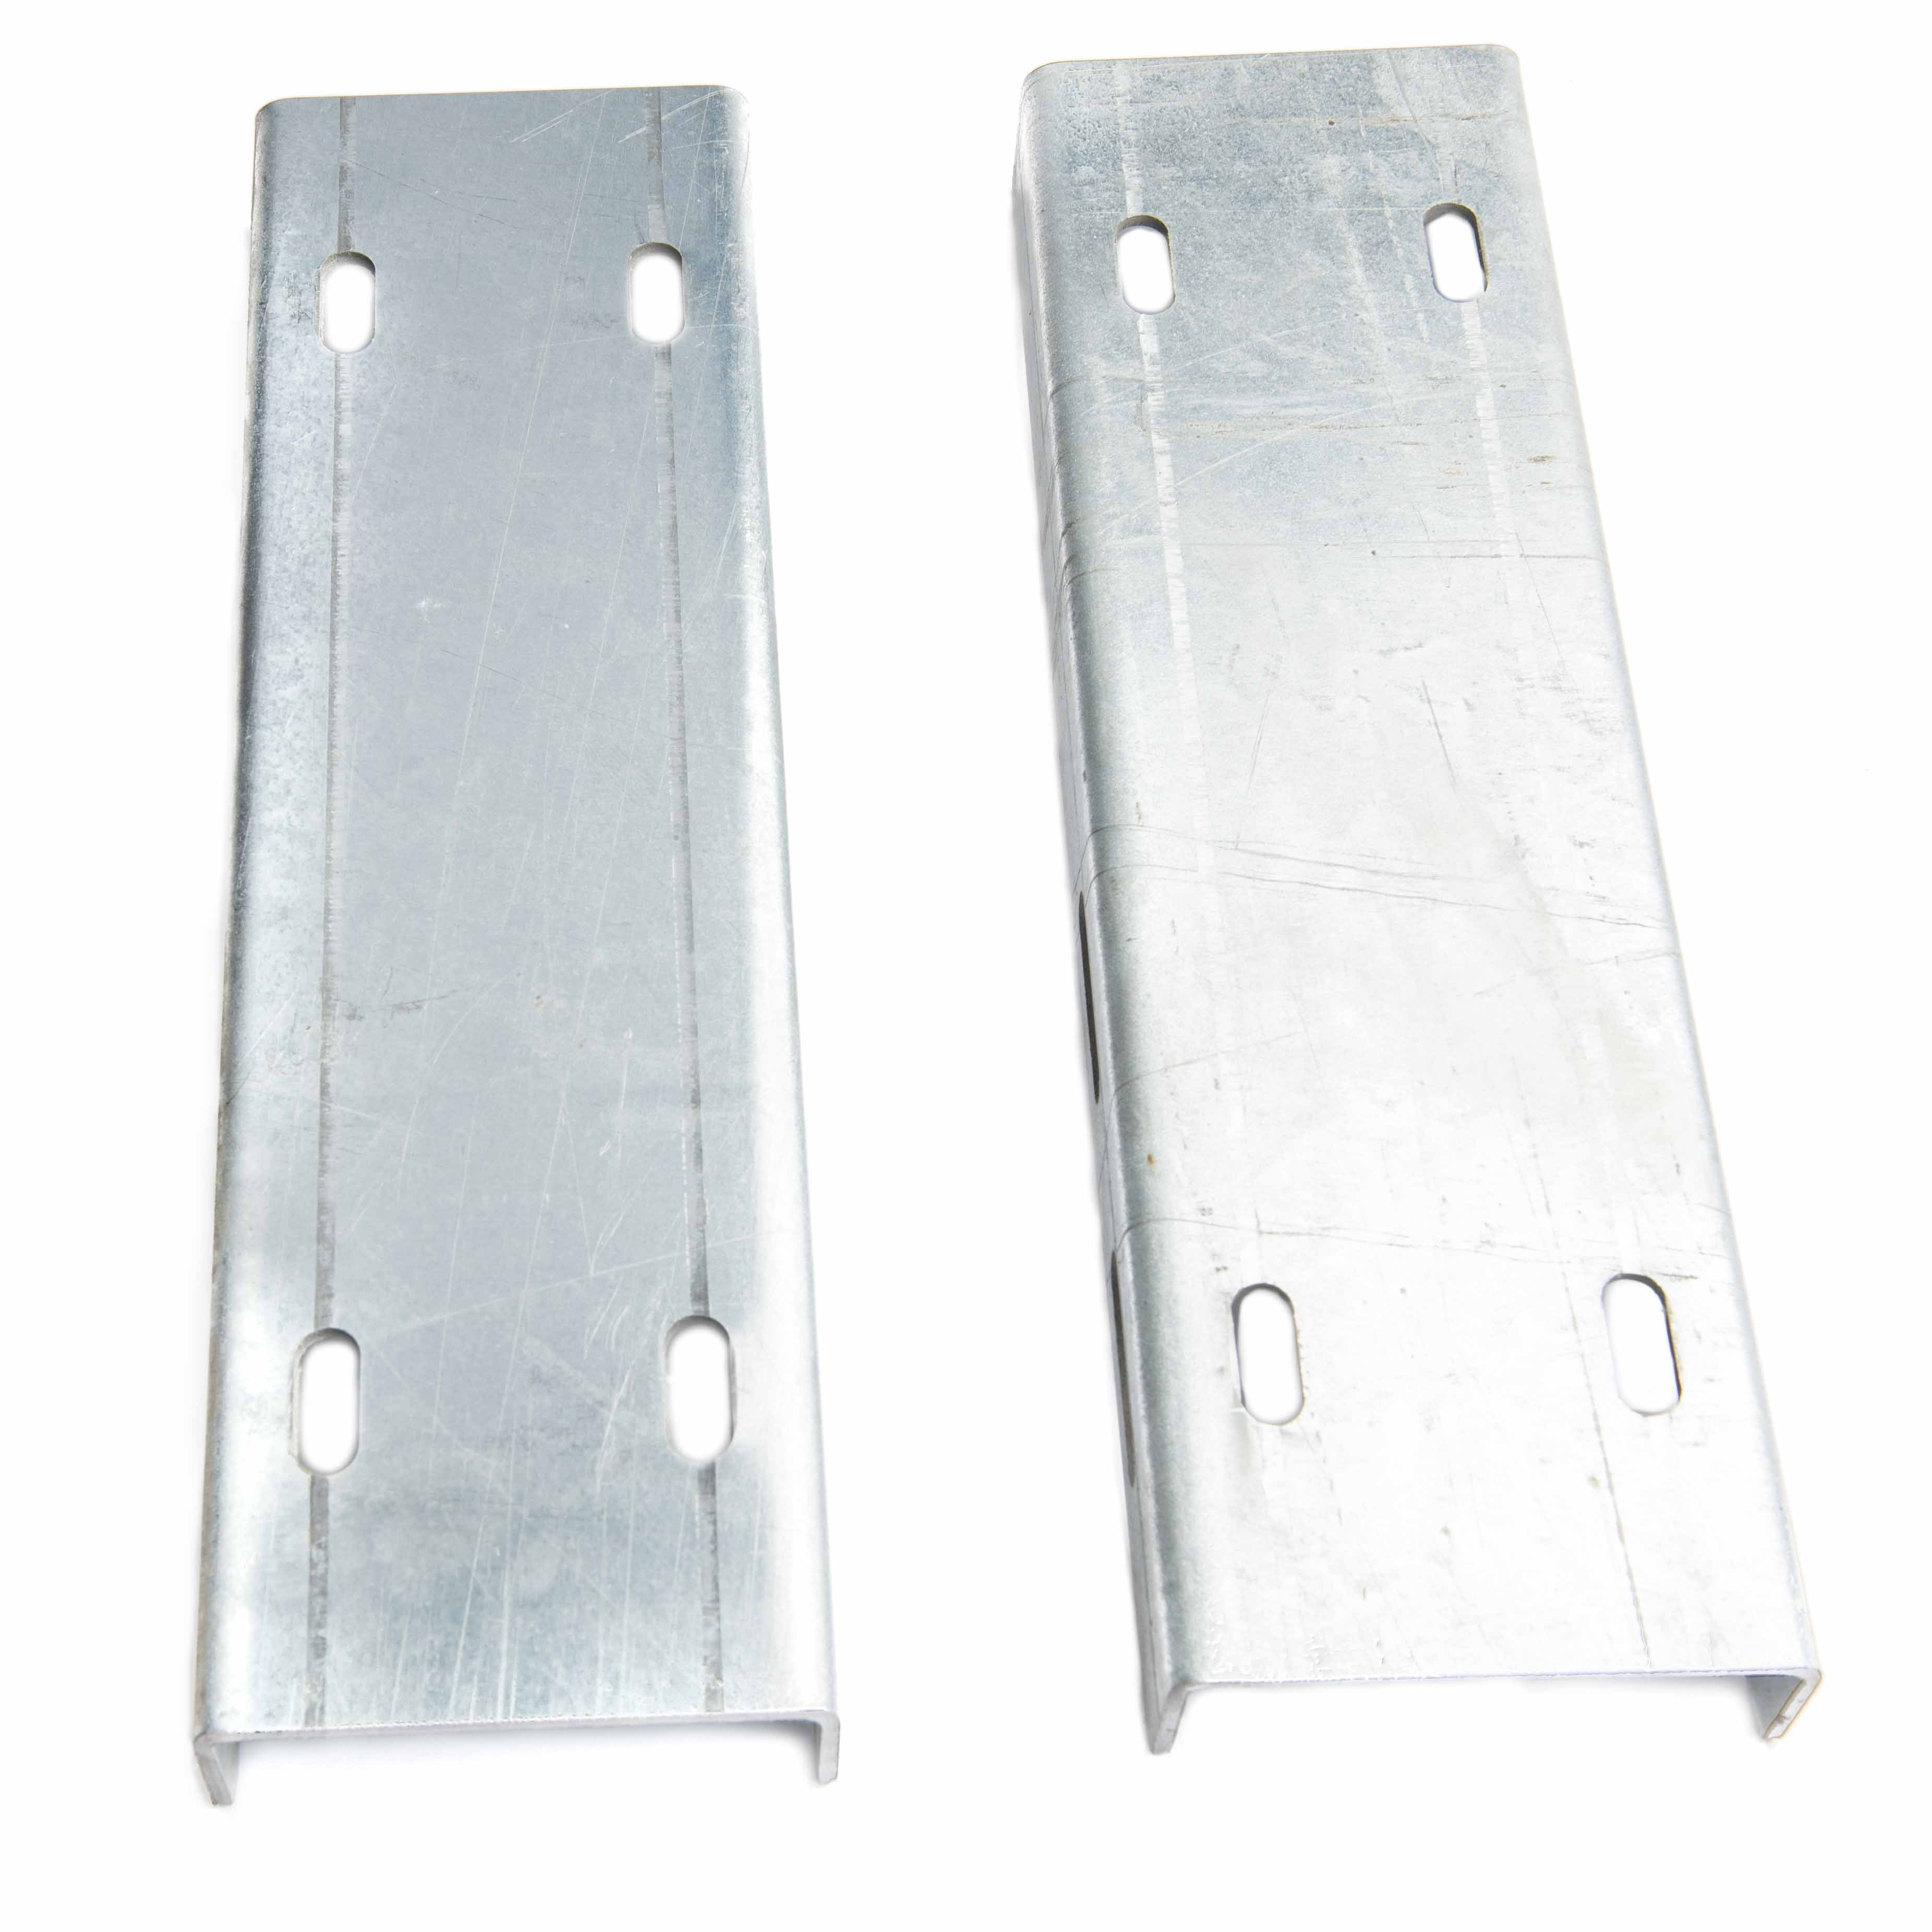 Mounting plates Frequenz